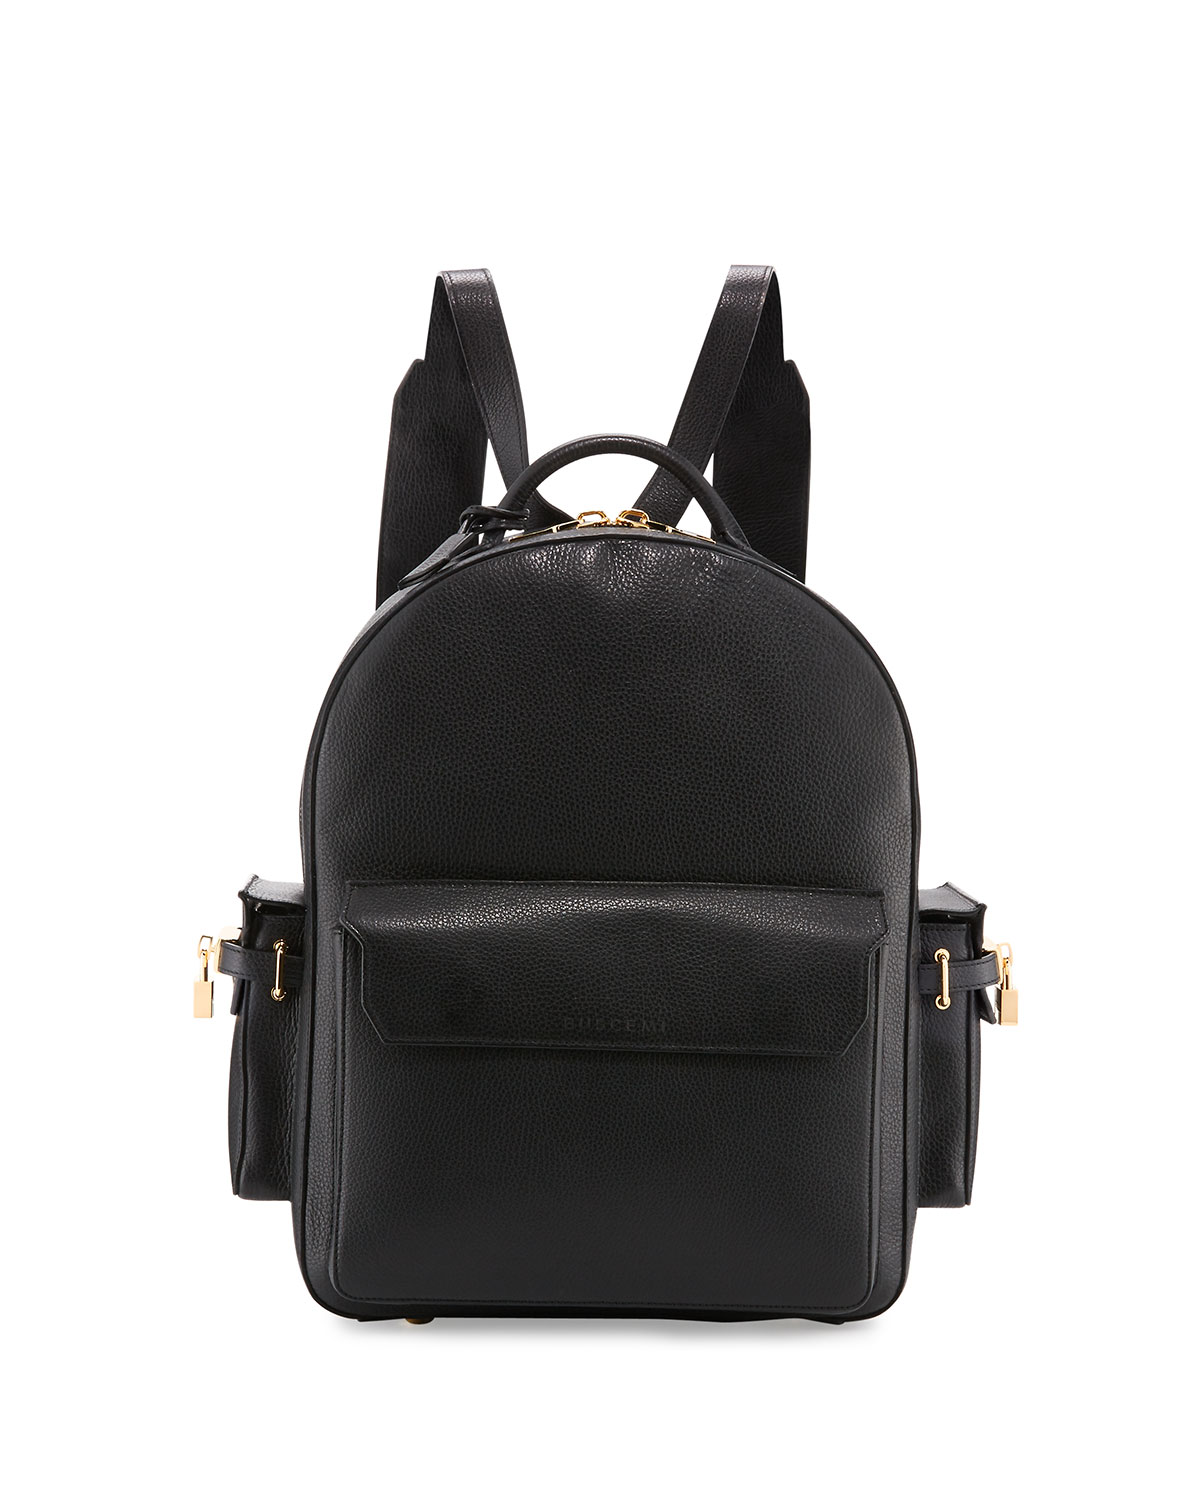 Buscemi PHD Men s Leather Backpack e20dc24d8a38